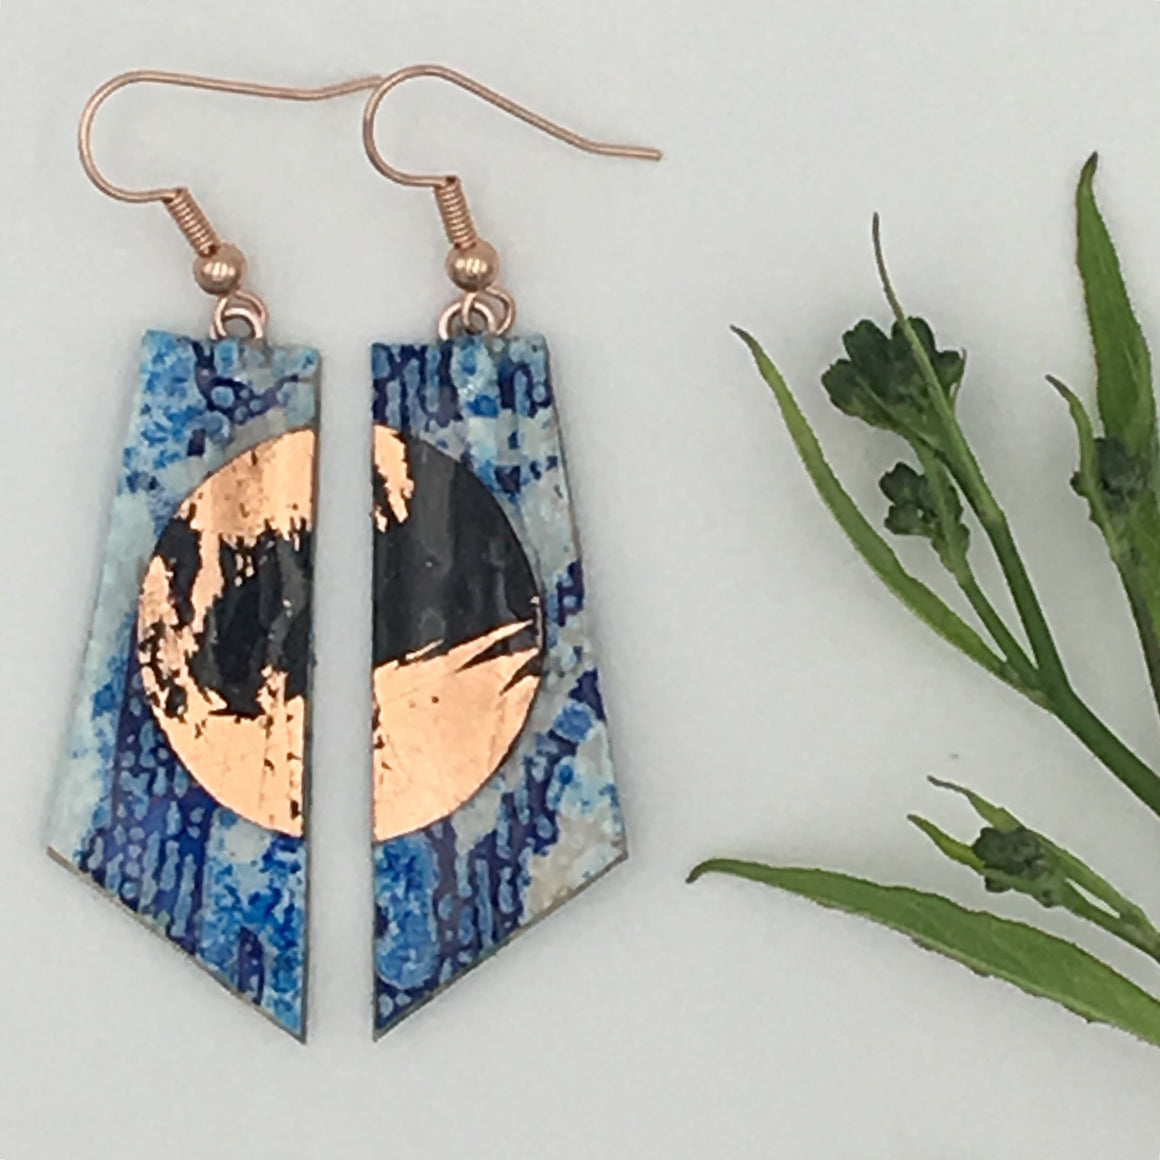 Cora batik textile earrings in blue/copper/black